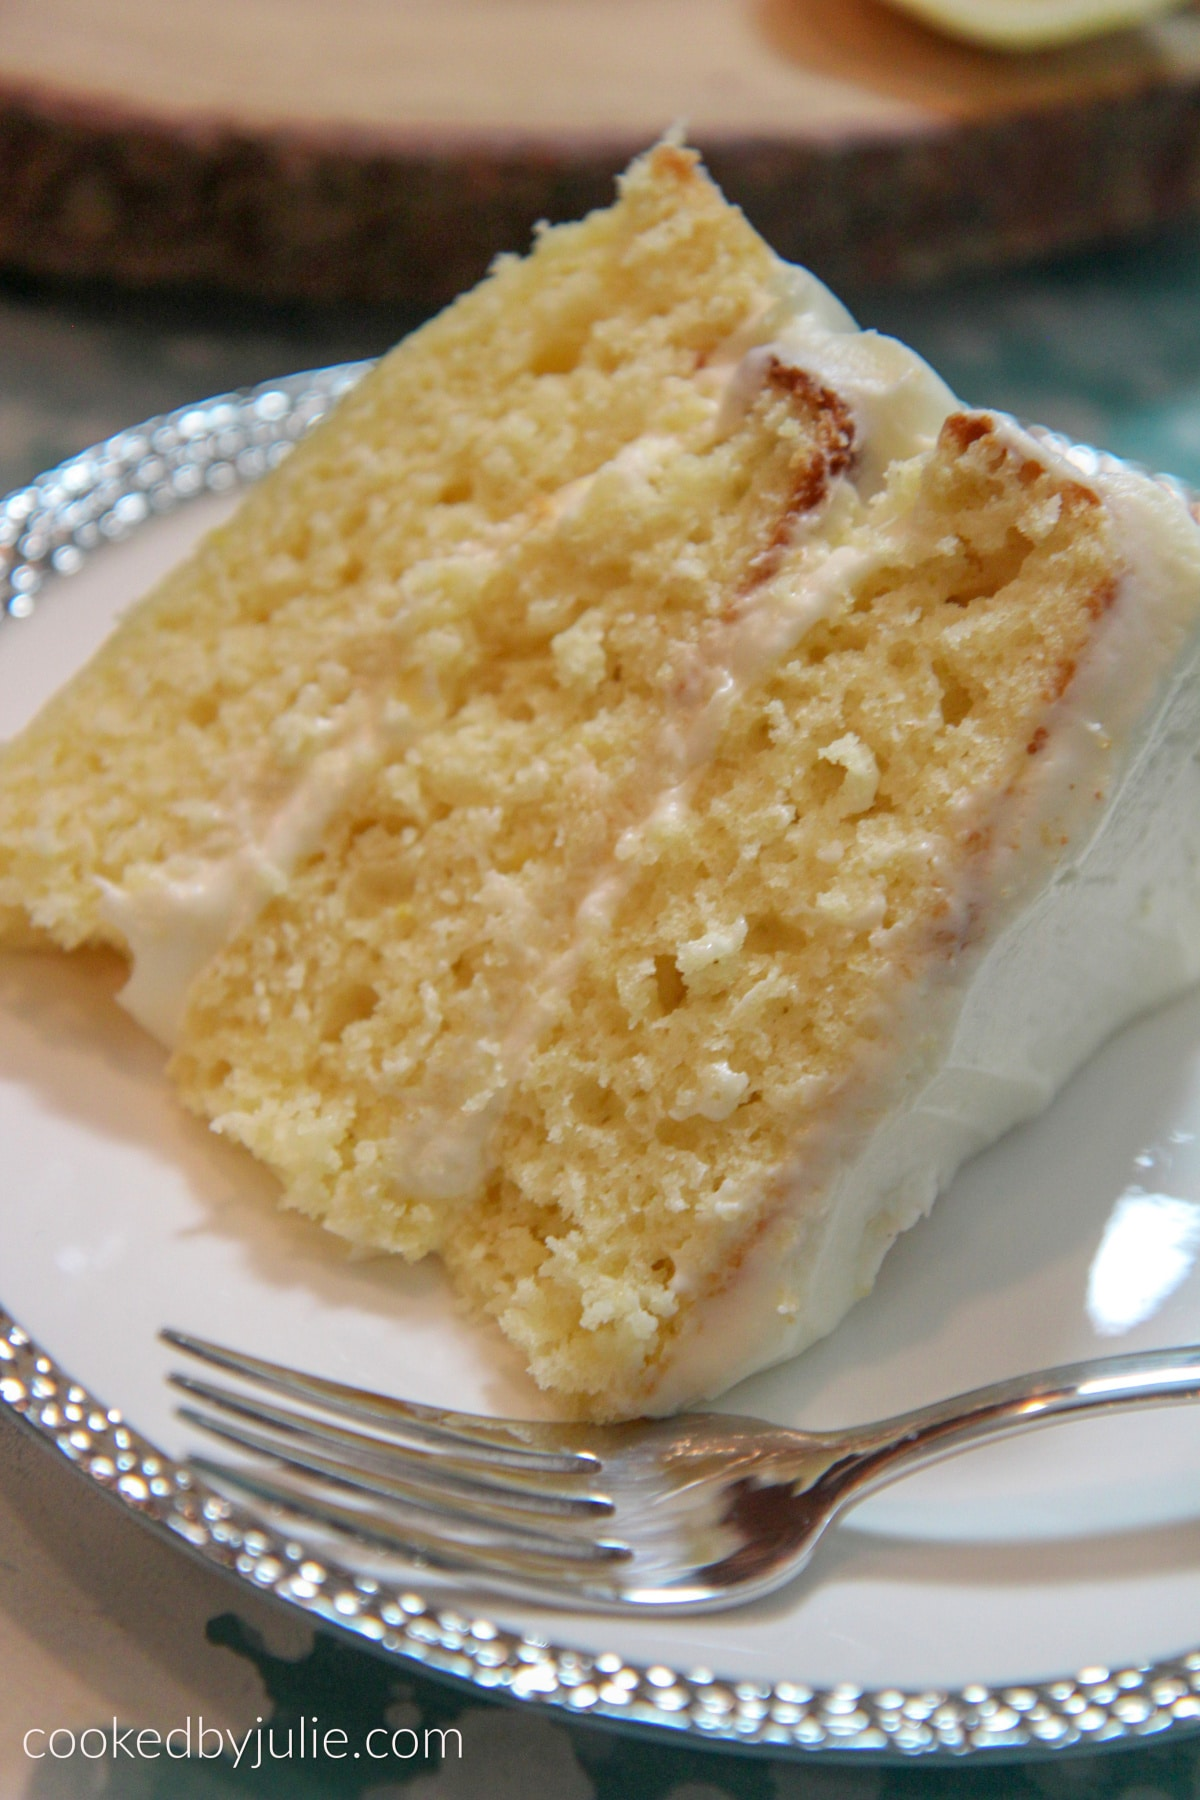 Lemon Cake with Cream Cheese Buttercream